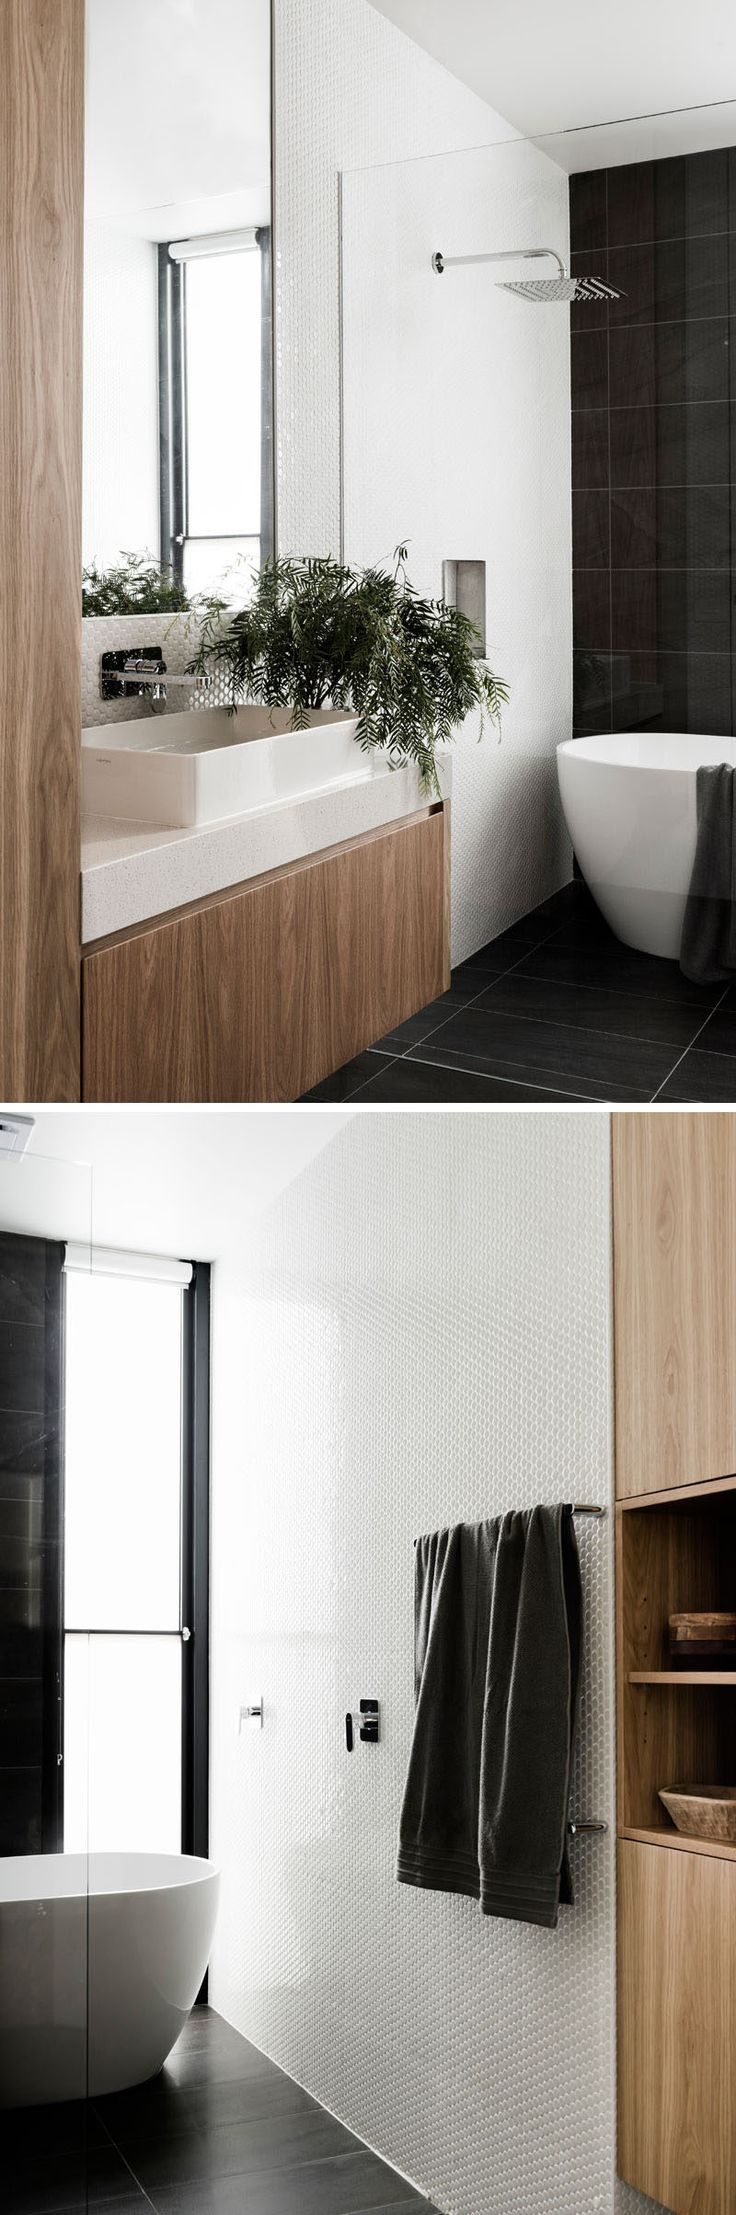 in this modern bathroom large dark tiles have been paired with small white tiles and - Contemporary Modern Bathrooms